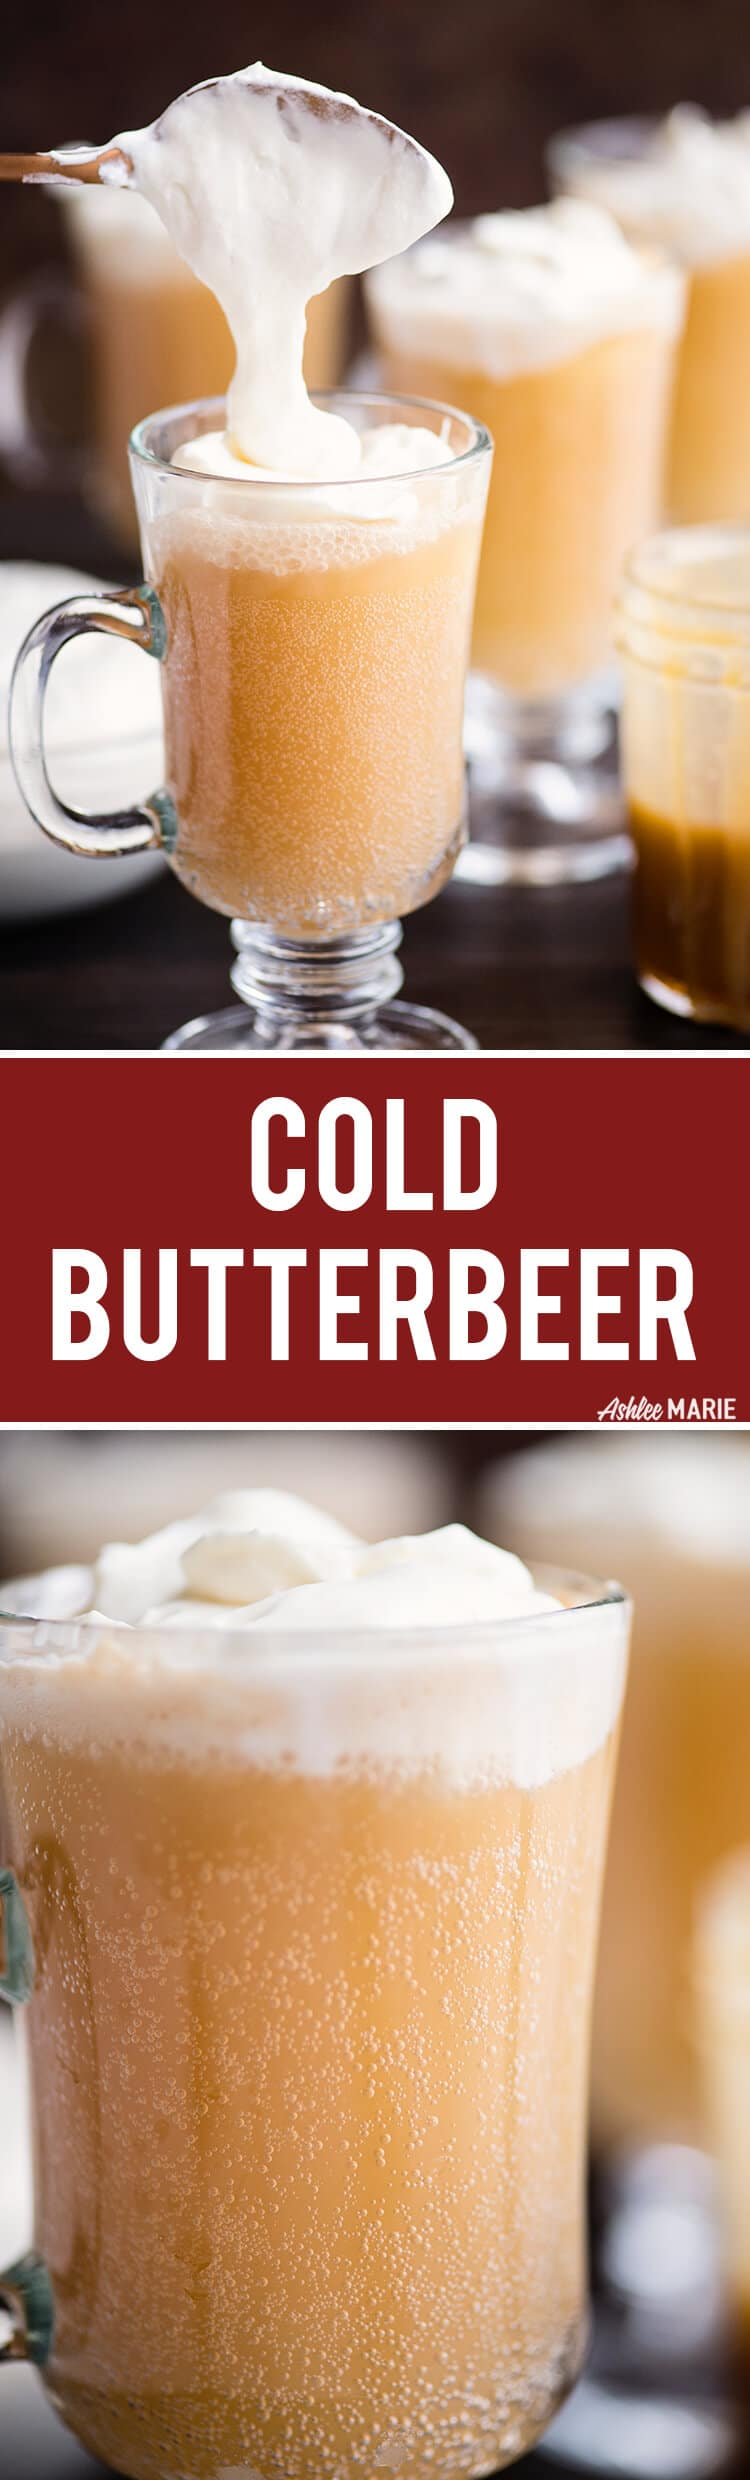 Copycat Homemade Cold Butterbeer recipe – video tutorial